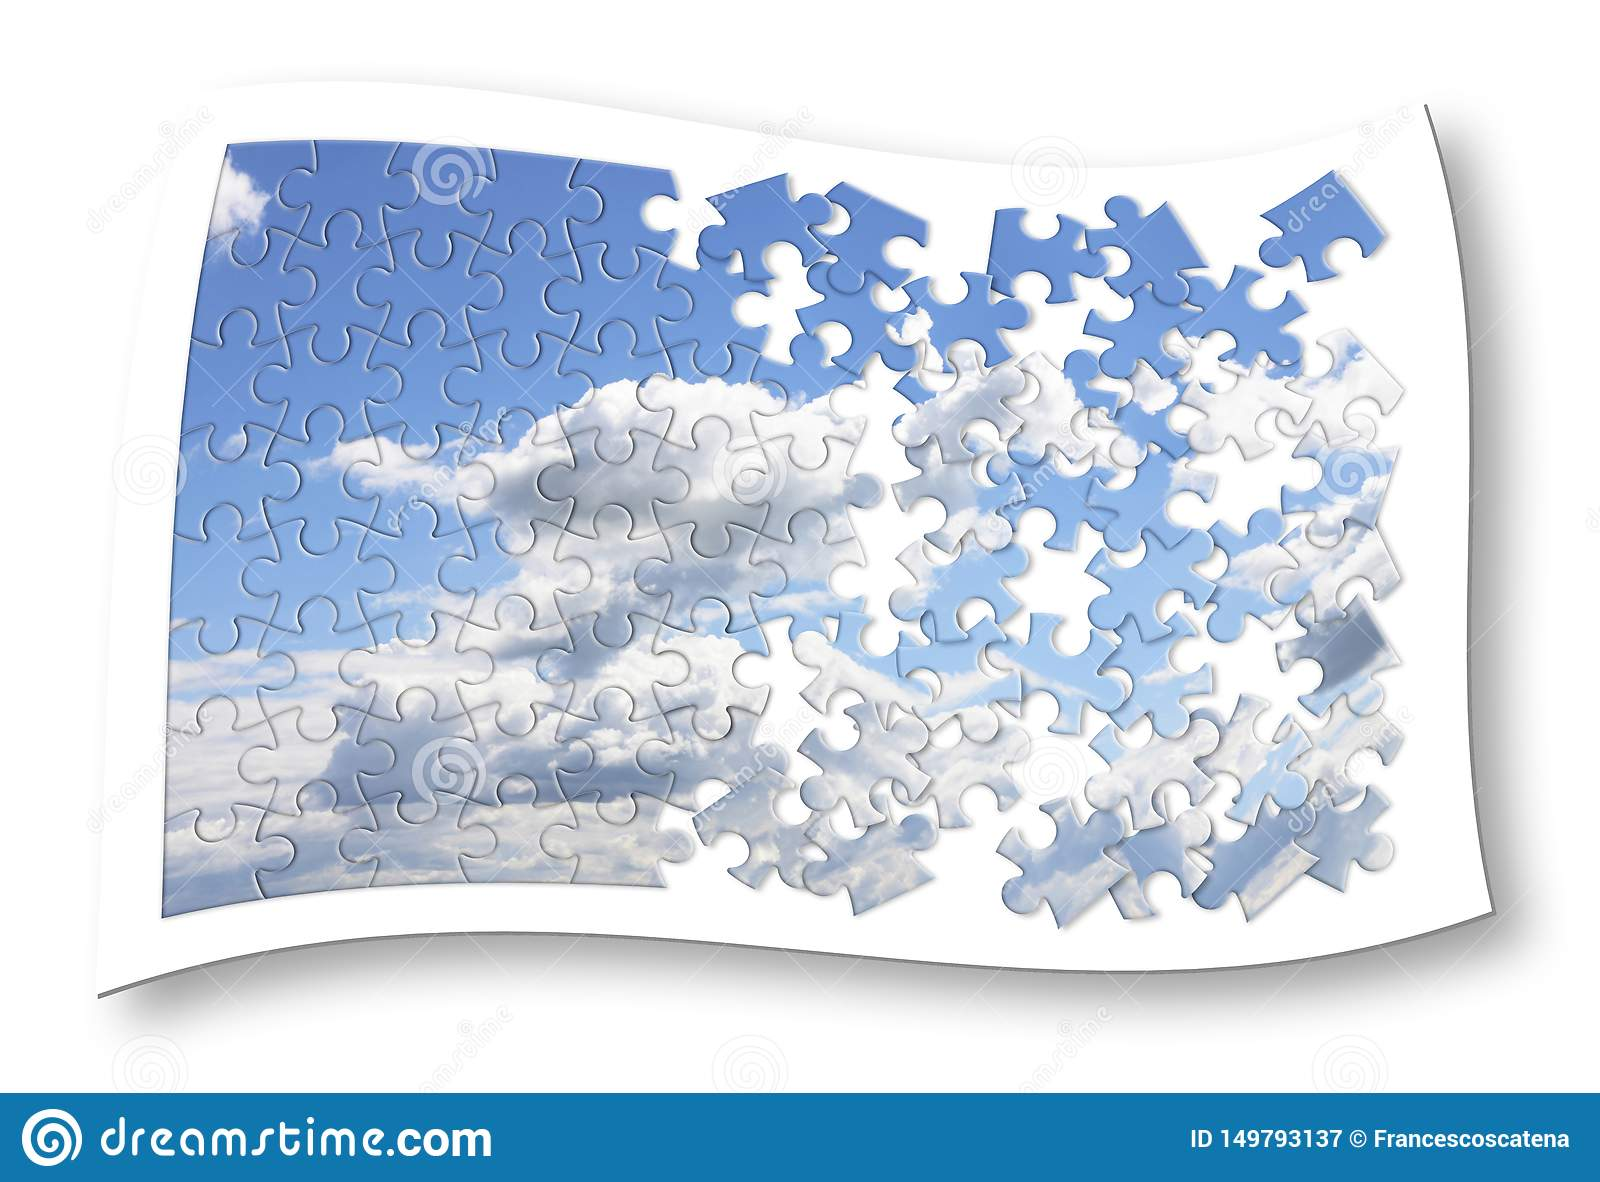 Climate changes concept image with a cloudy sky in puzzle shape